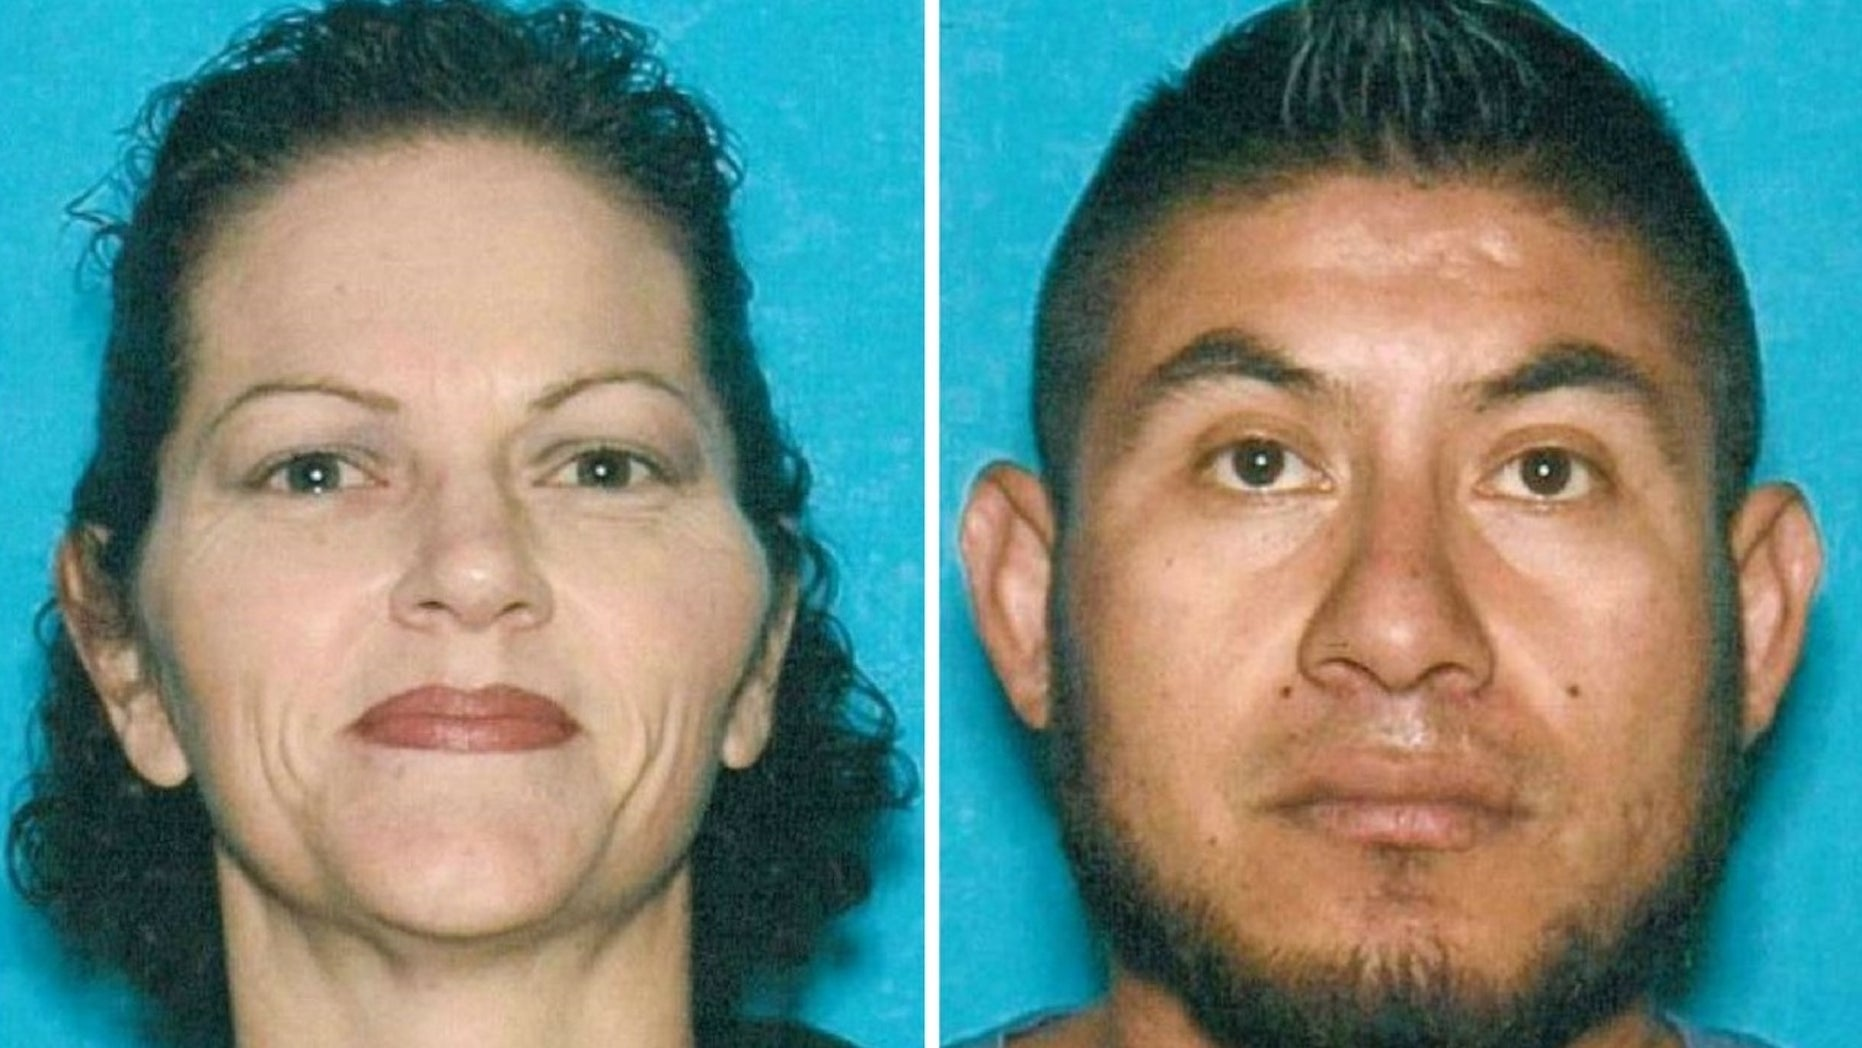 Stacie Mendoza and Jose Mendoza are accused of killing a Vietnam War veteran before burning his body, police said.